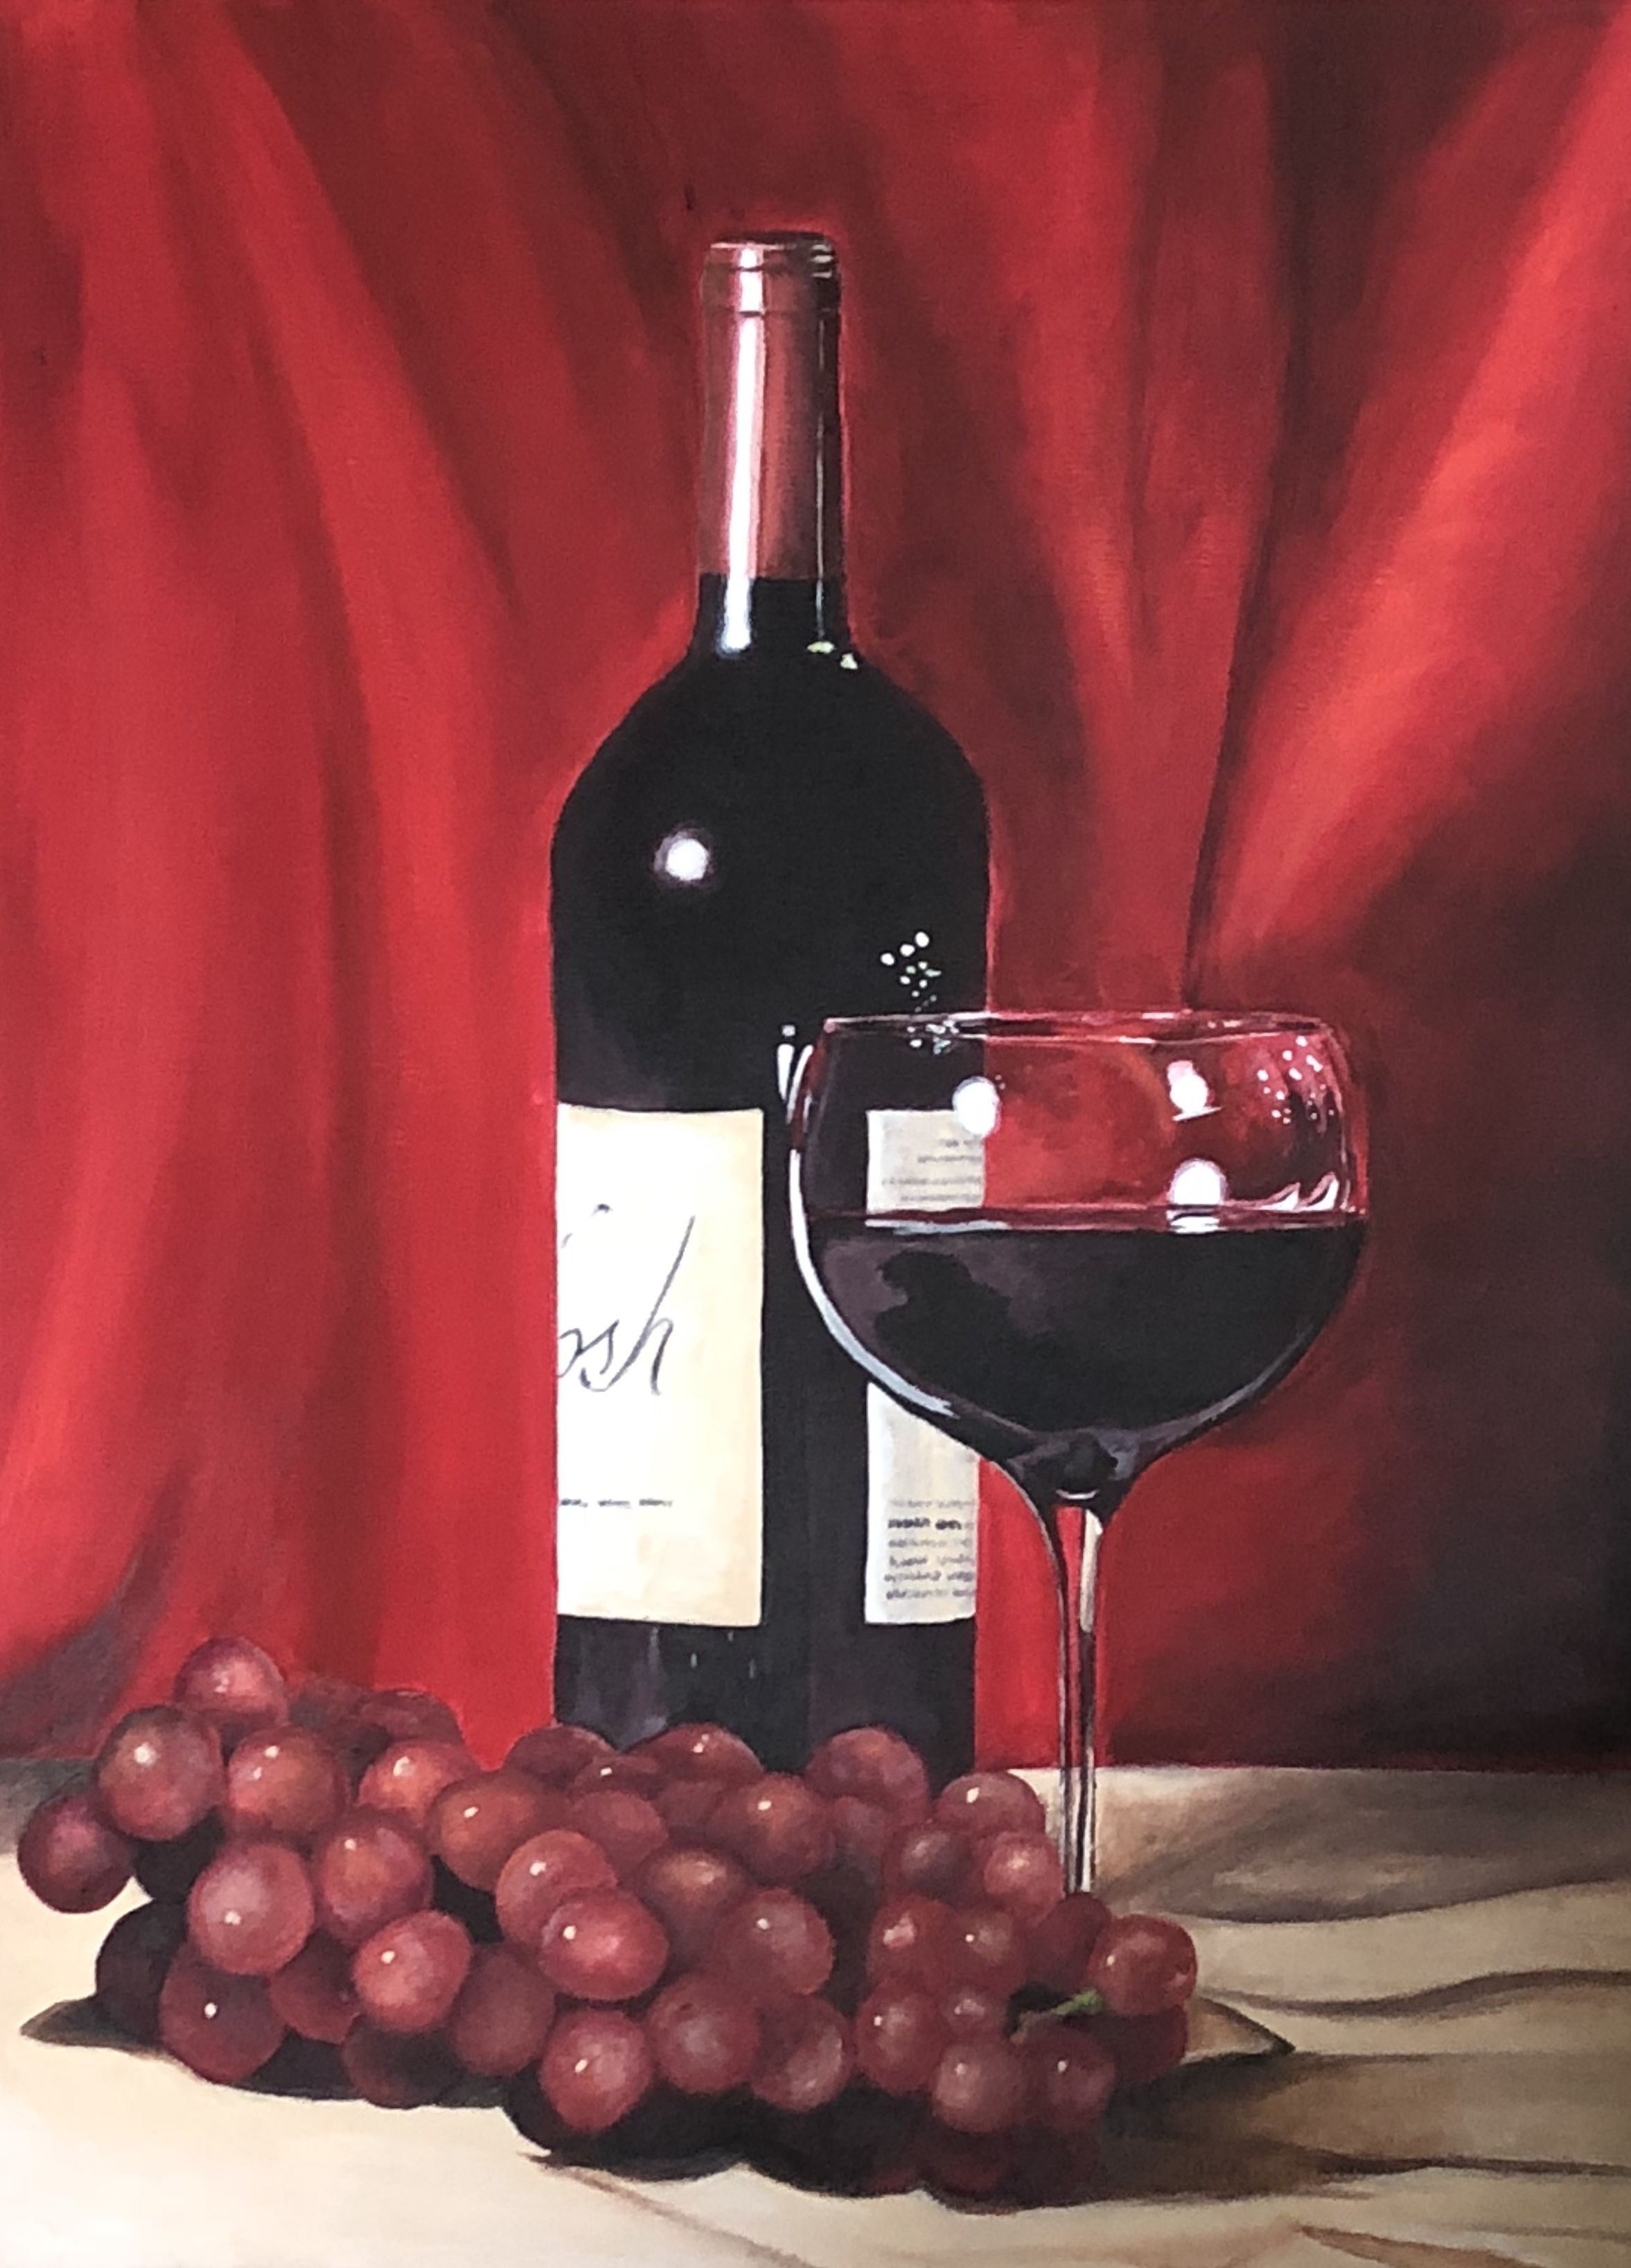 Realism Art Still Life Wine Glass And Grapes Www Etsy Com Shop Claudianolascoart Art Unique Items Products Acrylic Painting Canvas